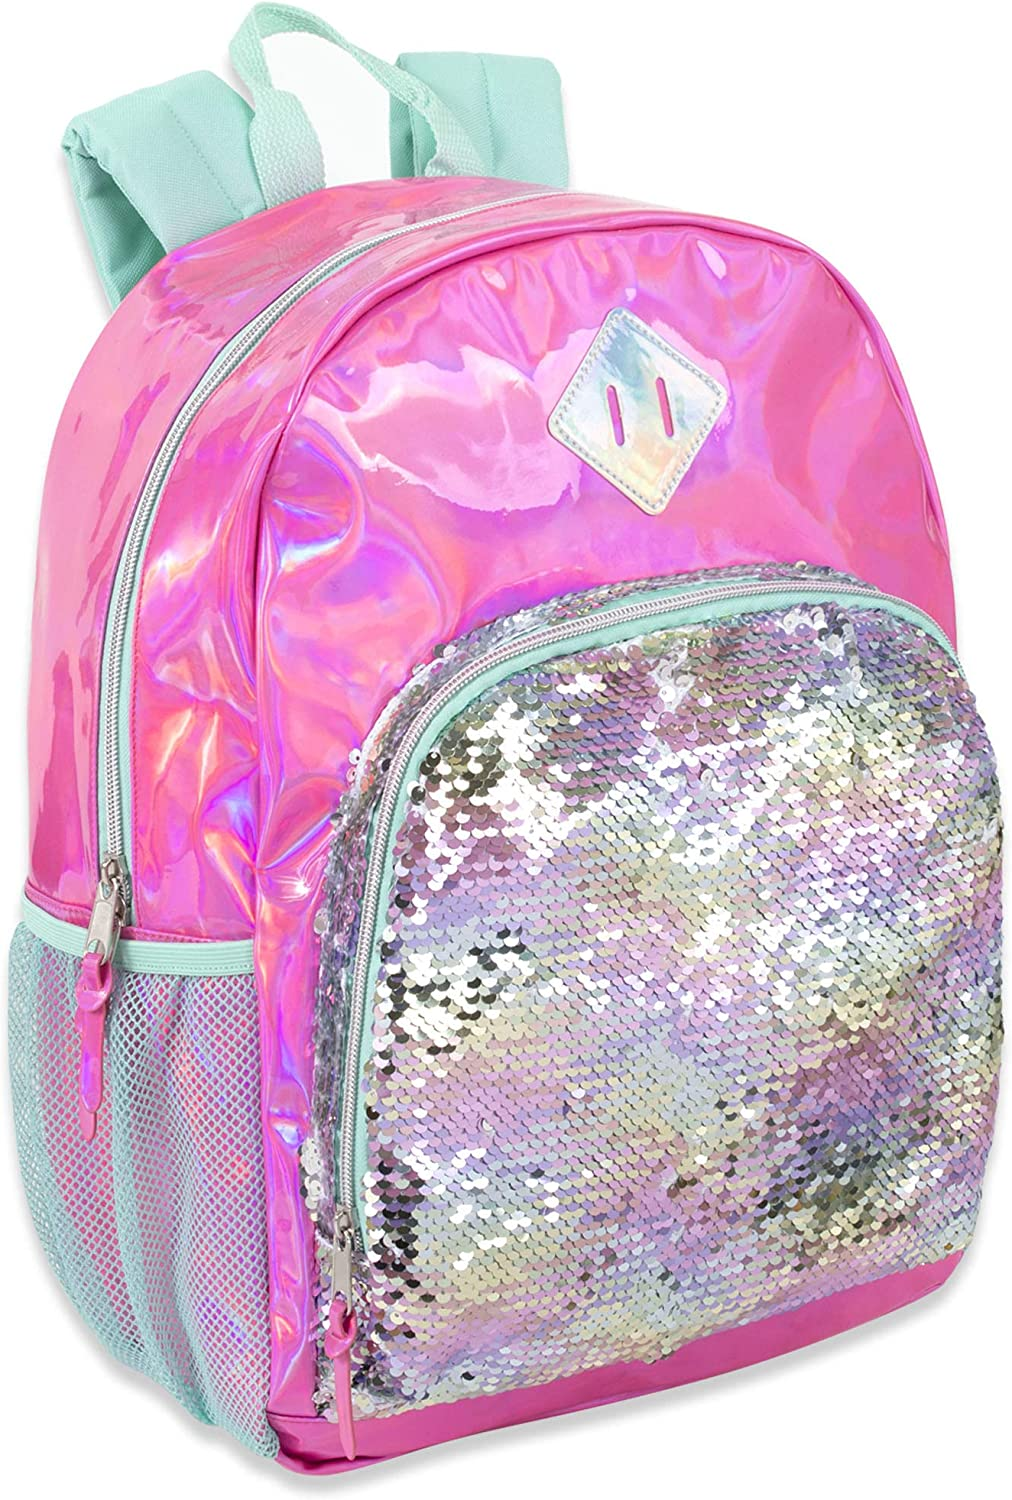 Holographic Laser Long Beach Mall Leather Reversible for Max 83% OFF Backpacks Sequin Women